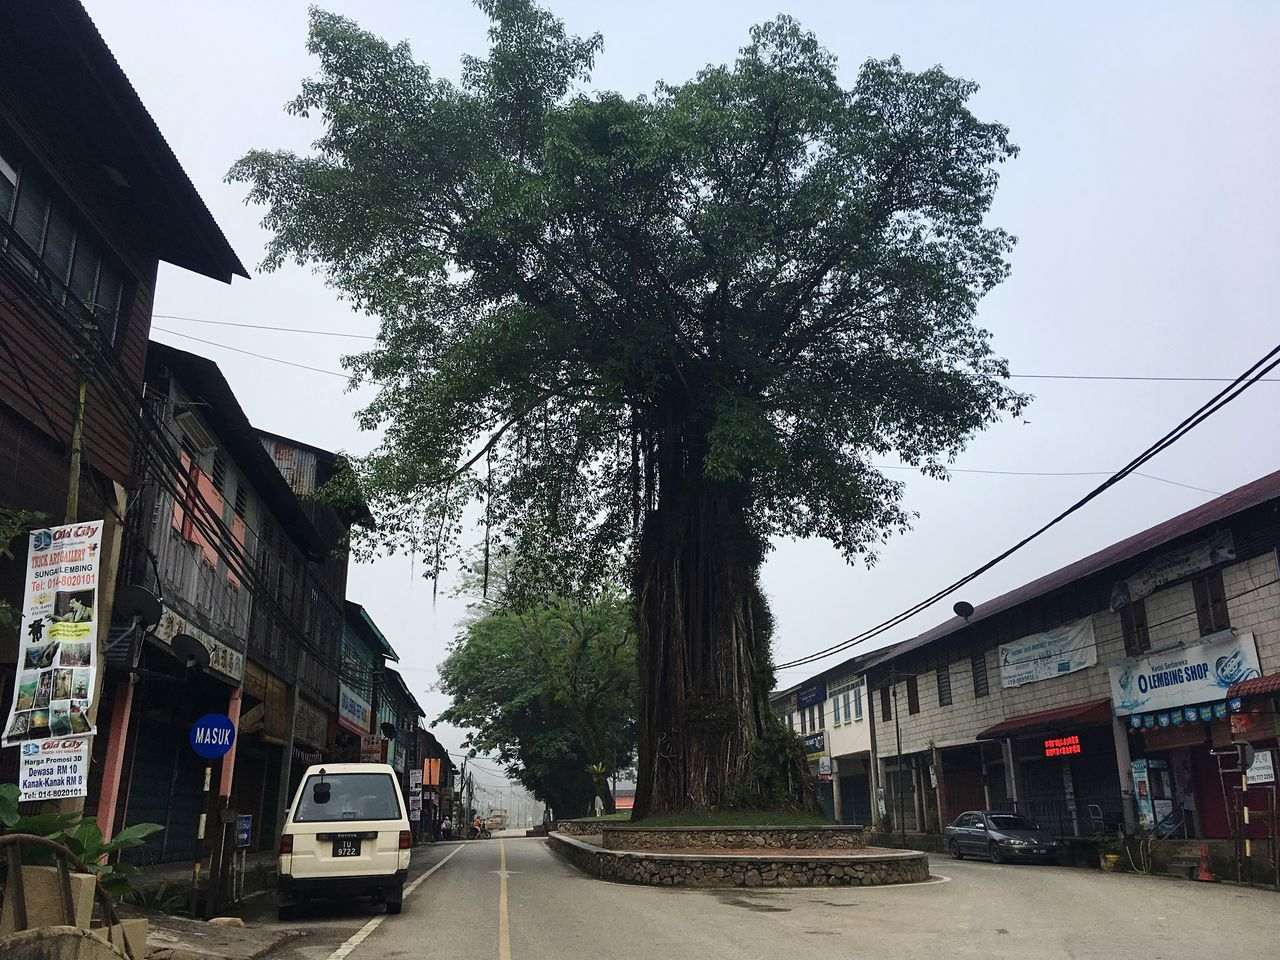 Tree Building Exterior Architecture Street Built Structure City Transportation Sky Outdoors Day Real People Tranquility Leisure Activity Beauty In Nature Pahang, Malaysia Malaysia Sungai Lembing Misty Morning Tree Lifestyles No People (null)Architecture Tourist Wood - Material